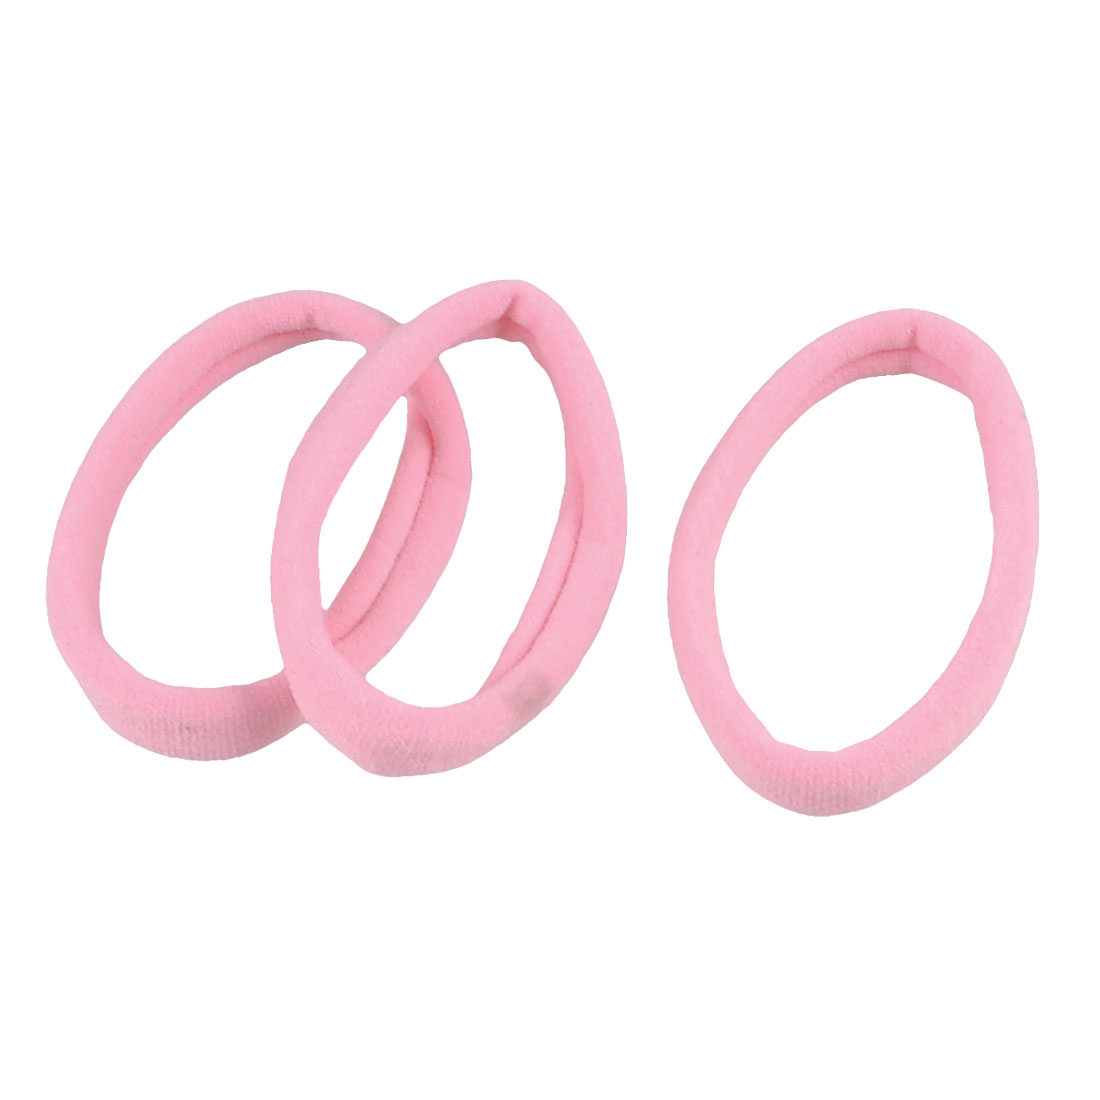 3 Pcs Stretch Hairband Hair Ties Wrap Ponytail Holder Pink for Women